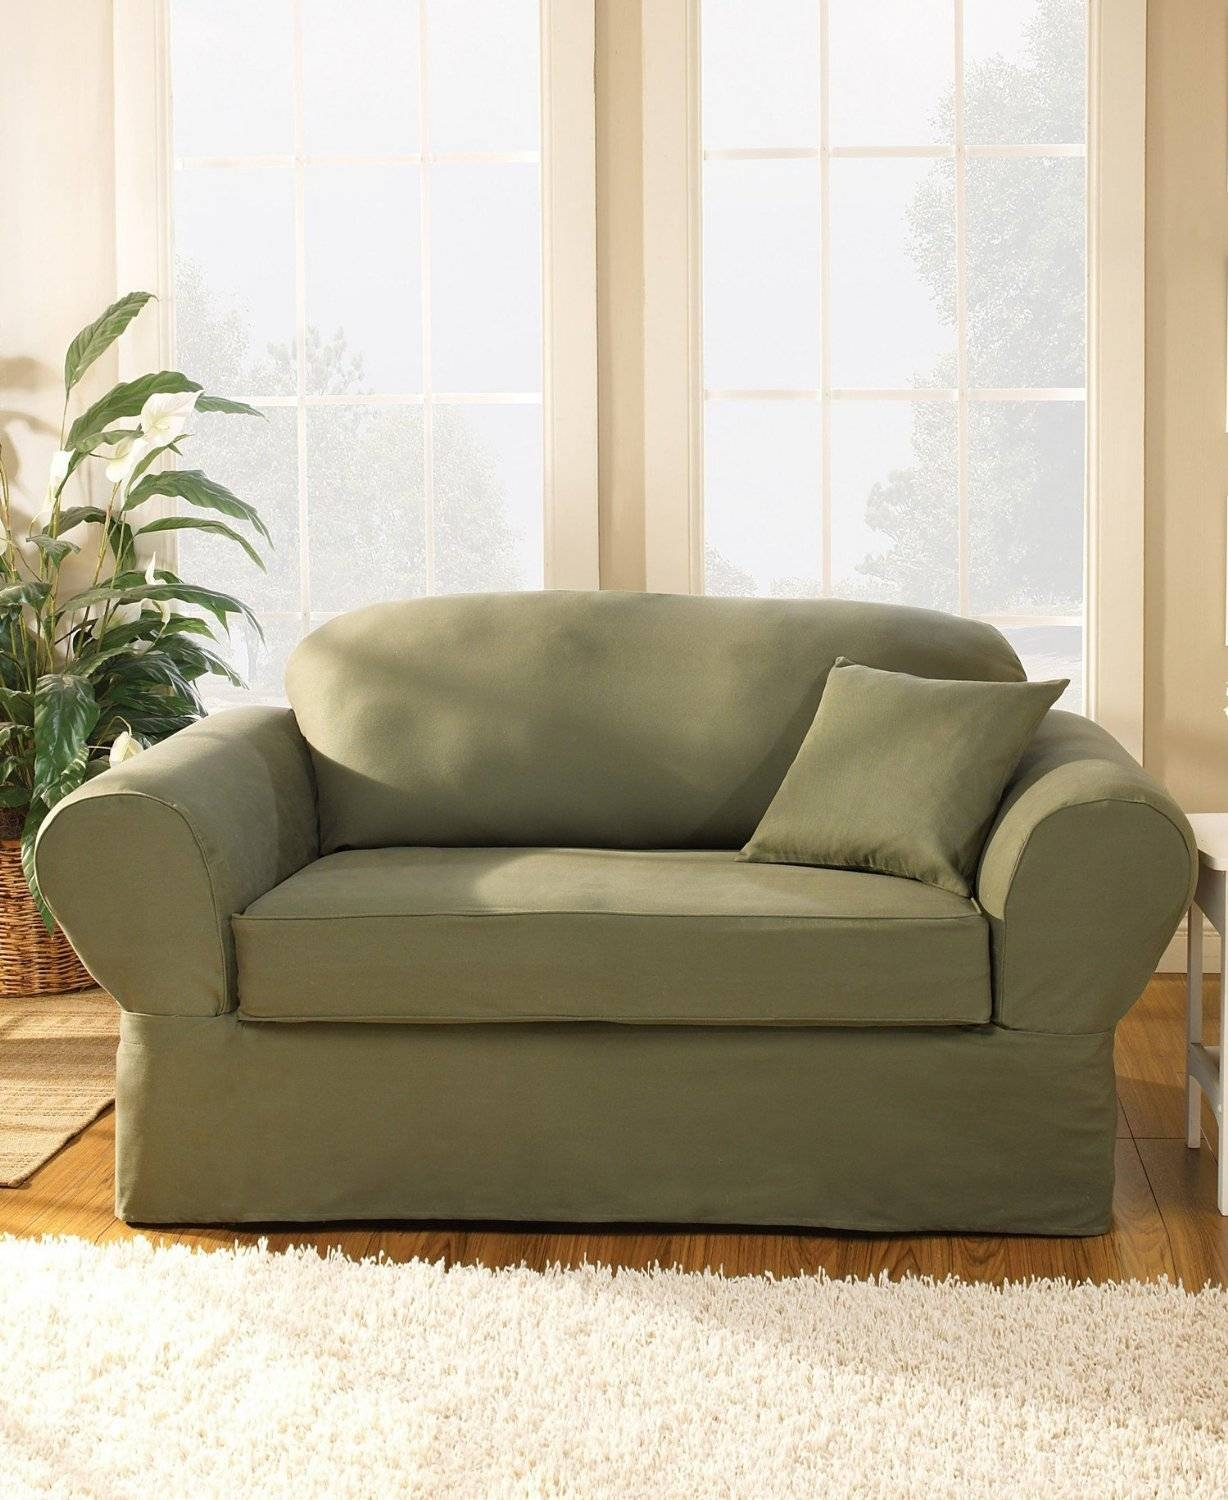 Furniture: Protect Your Lovely Furniture With Sure Fit Slipcovers regarding Loveseat Slipcovers 3 Pieces (Image 5 of 15)